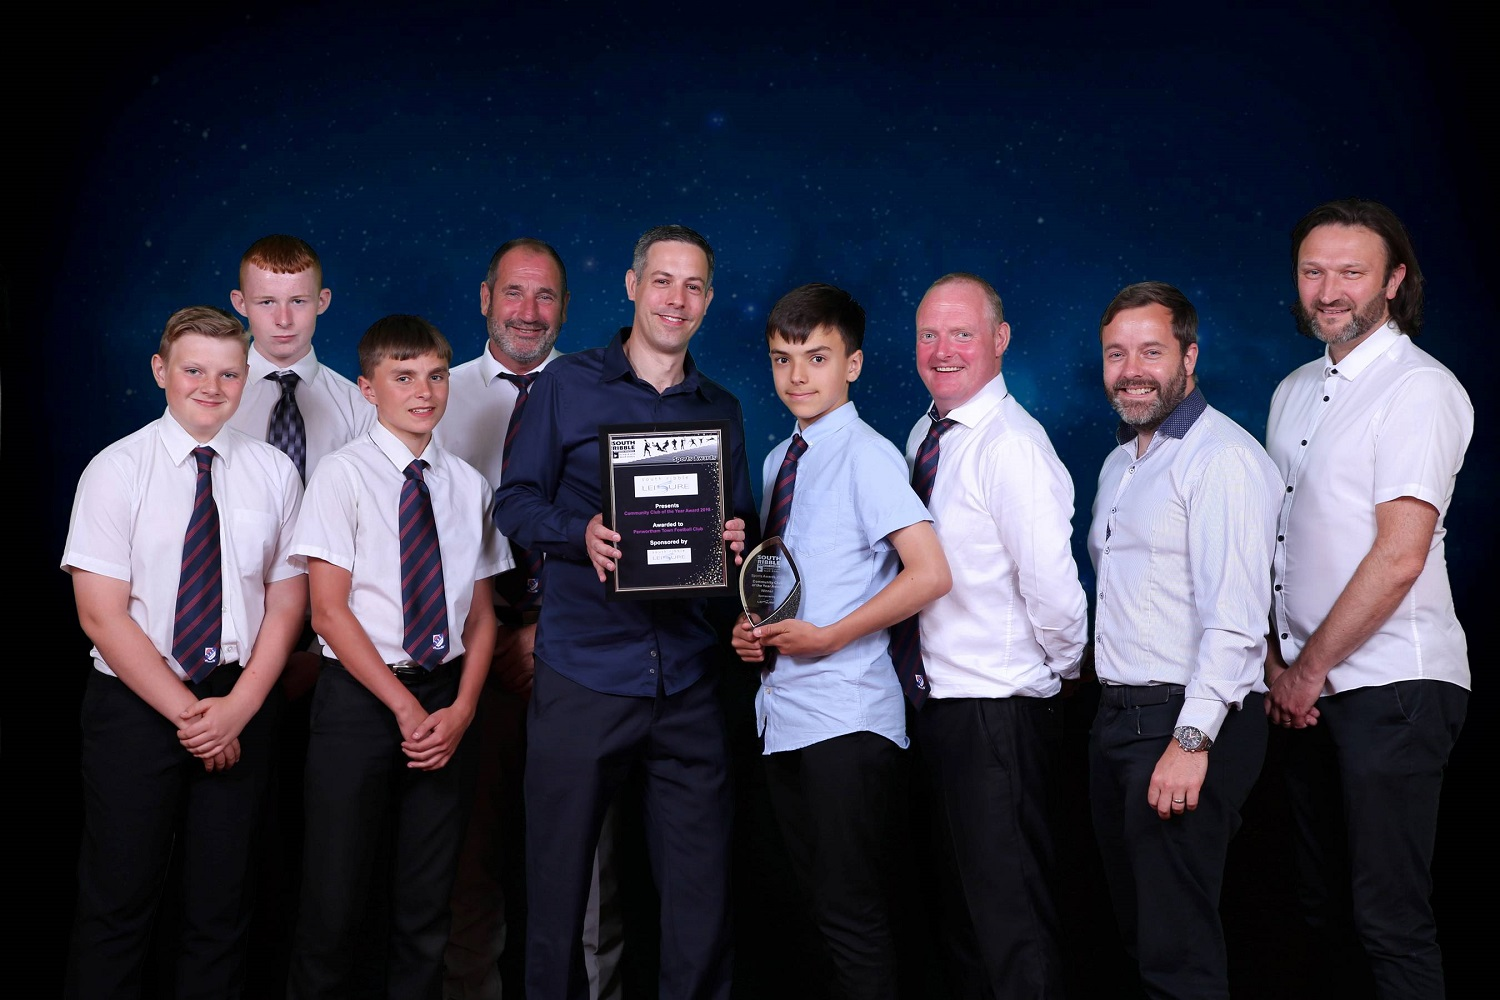 Nominate now for South Ribble Sports Awards 2020